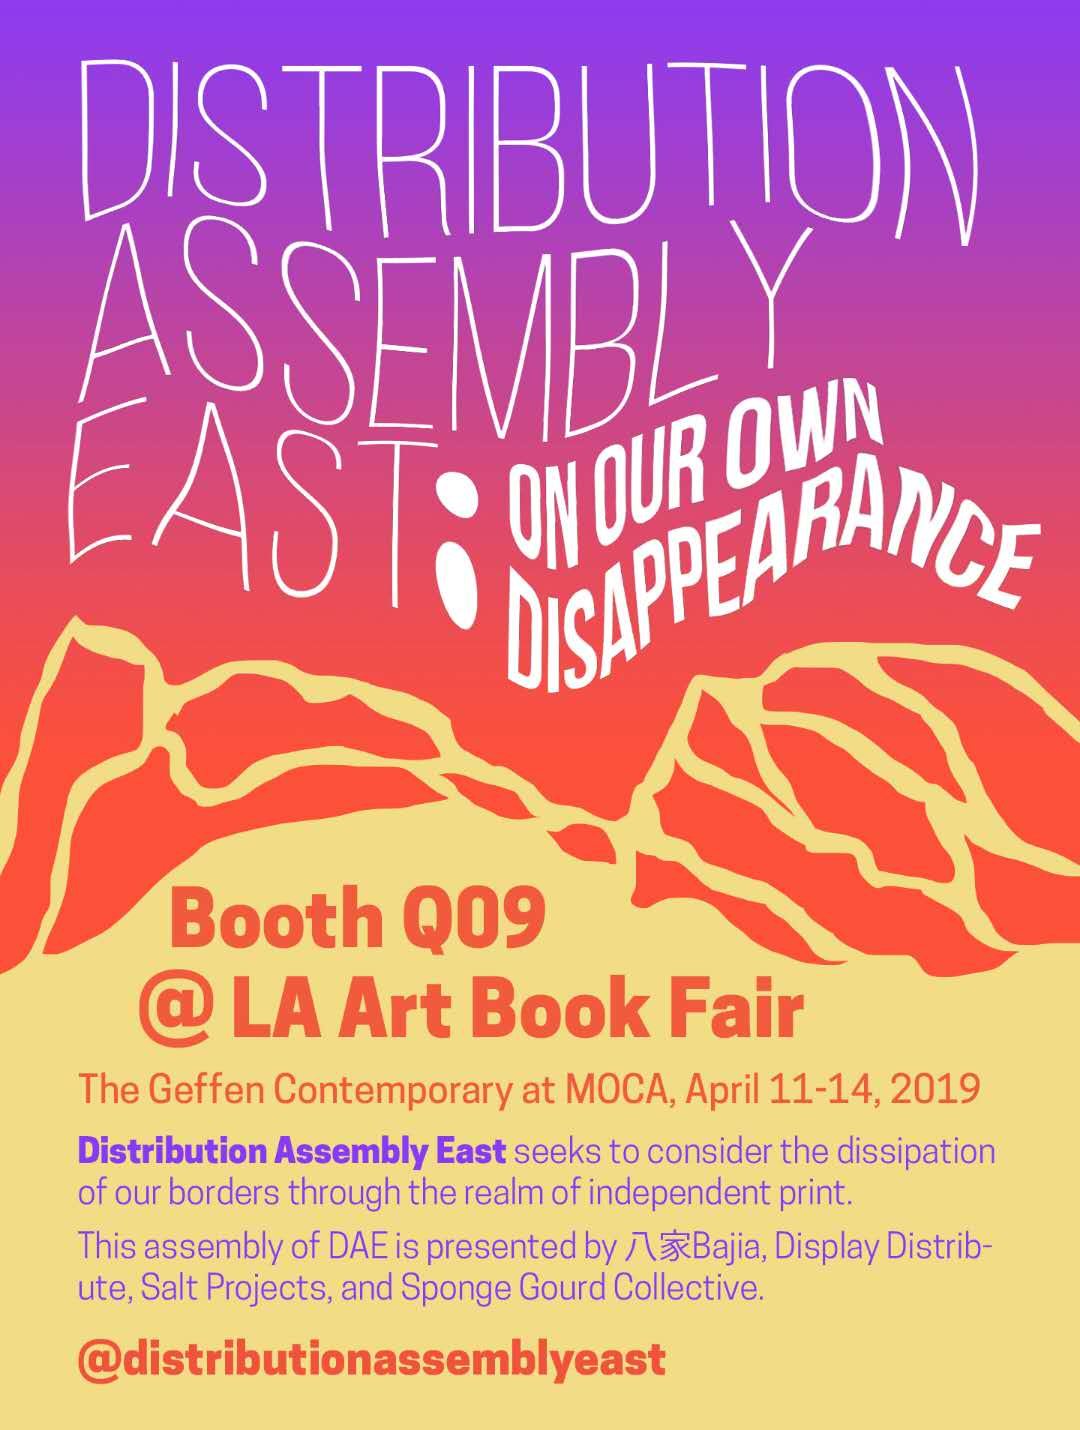 Distribution Assembly East东亚分销网密集会 - Distribution Assembly East (DAE) is a conversation and spontaneous convening of independent publishers, publication-making artists and distributors working in, with, and throughout the 'East.'DAE's first presentation,